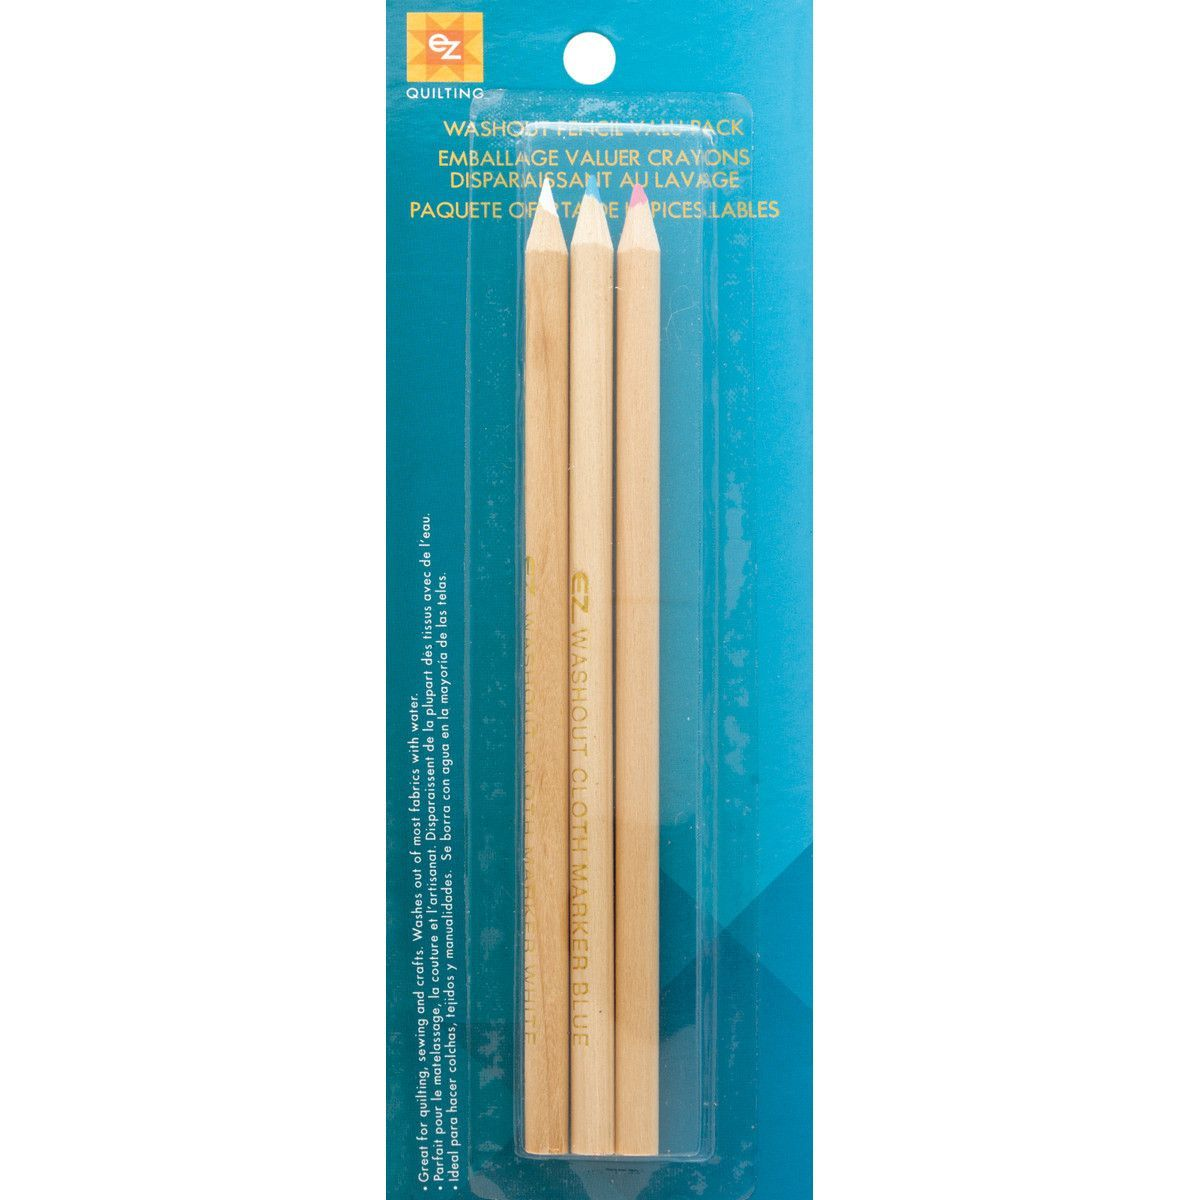 Washout Pencil Valu-Pak Red, White and Blue